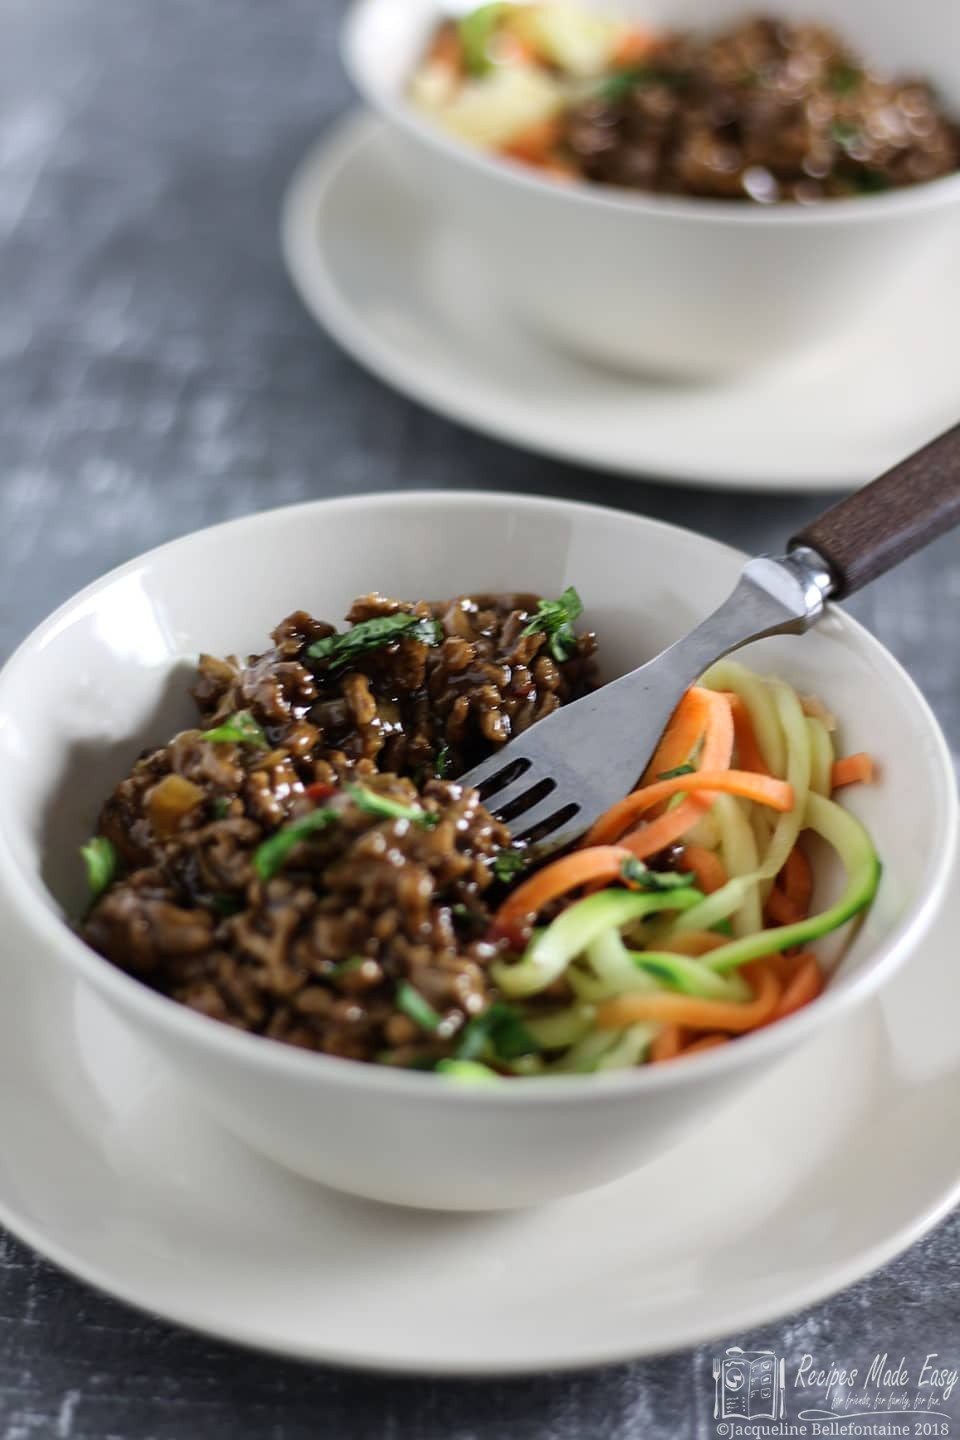 Easy oriental pork. A quick simple savoury minced pork packed with flavour. By recipesmadeeasy.co.uk